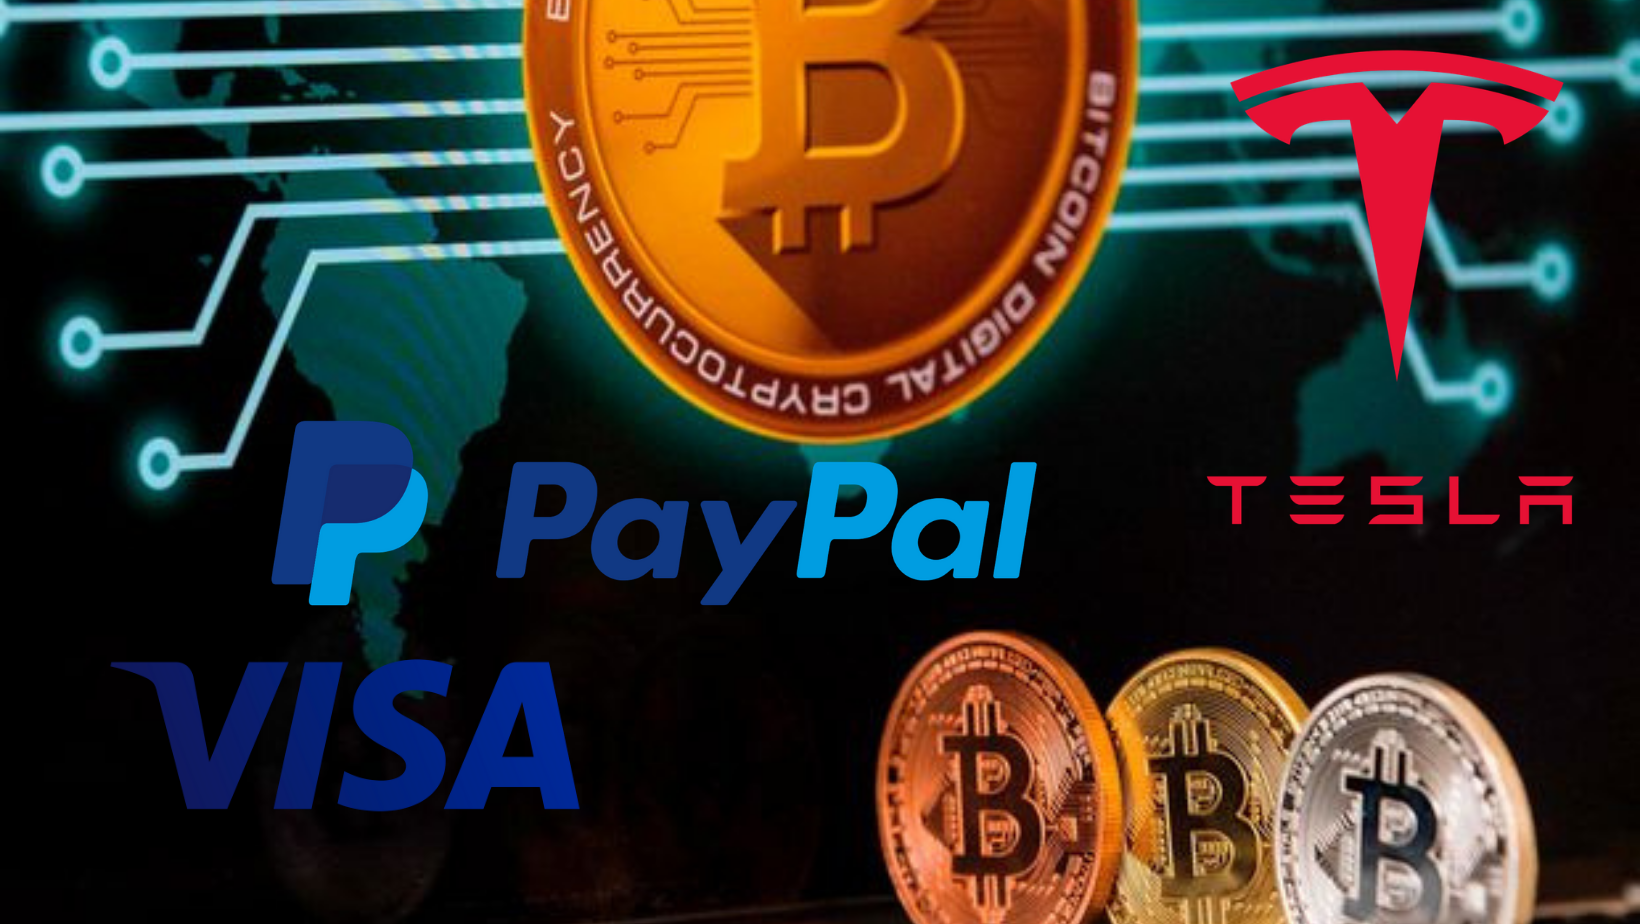 Tesla, Visa, Paypal and others embrace Bitcoin